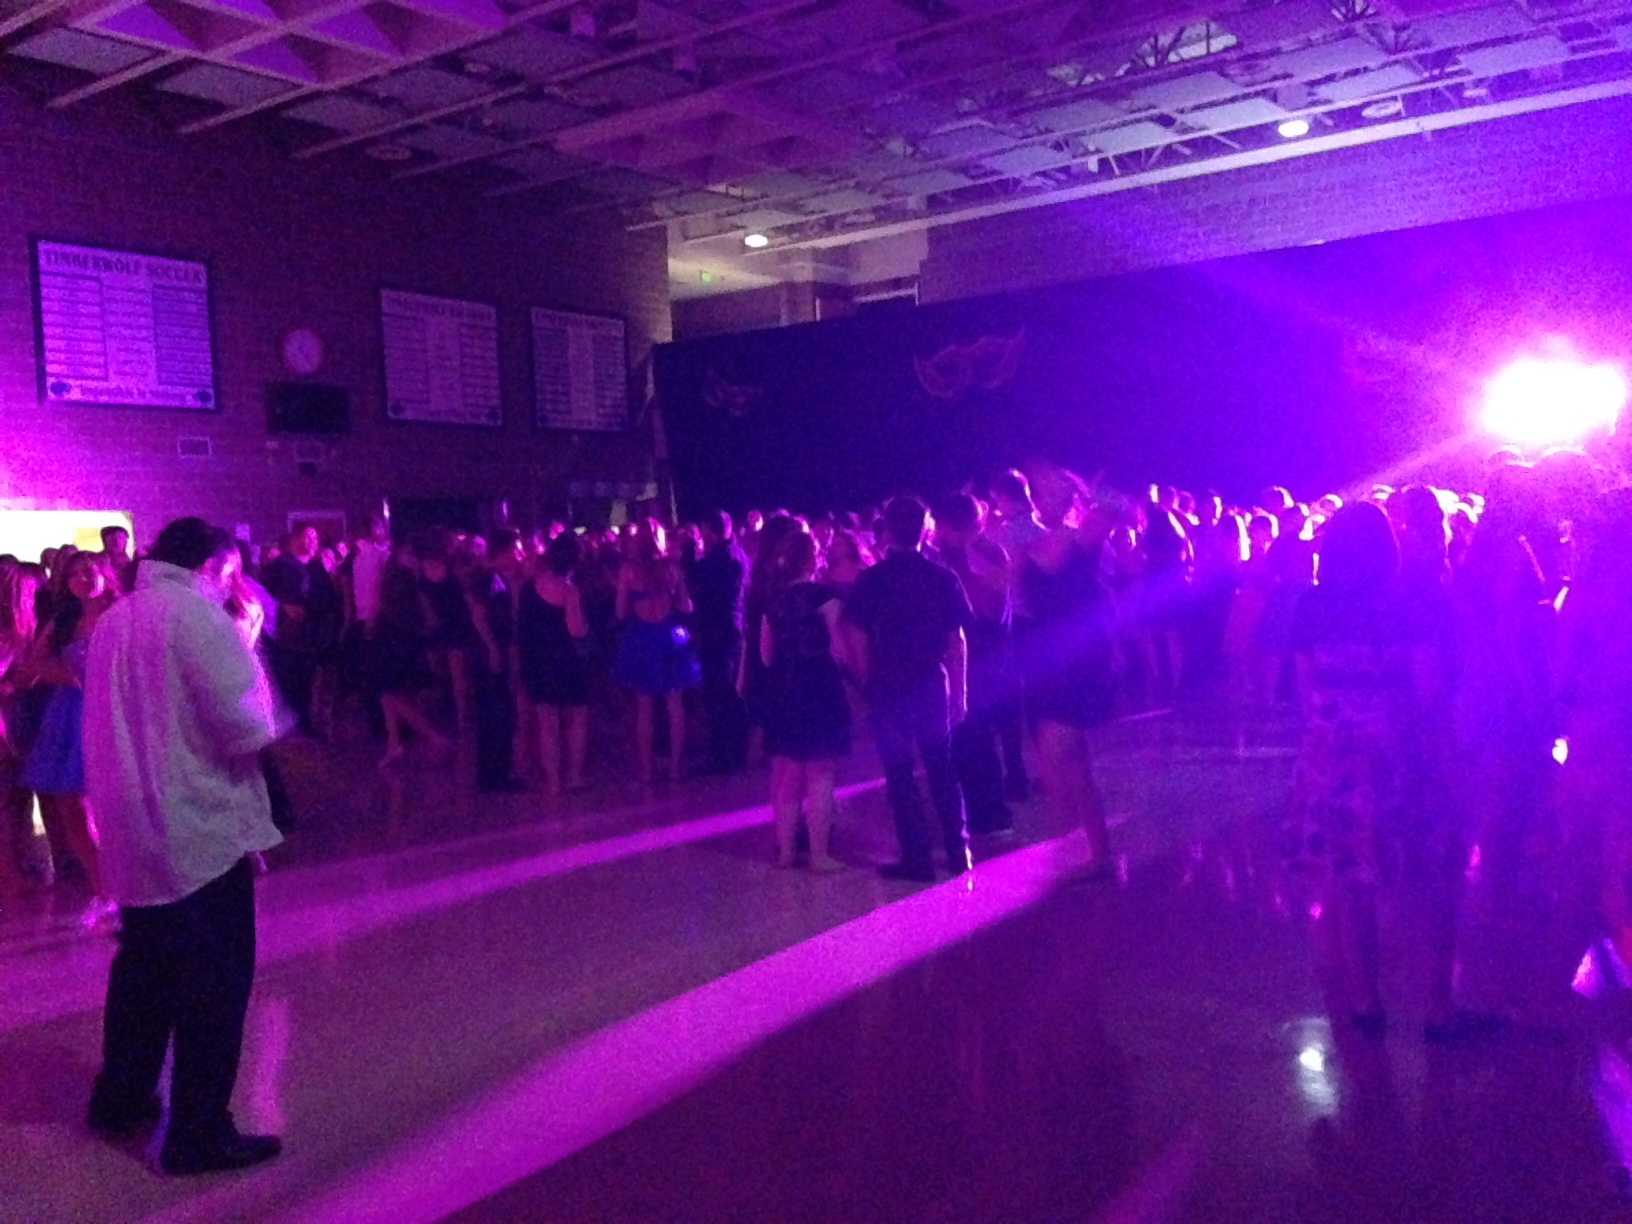 The 2015 Homecoming dance was packed!